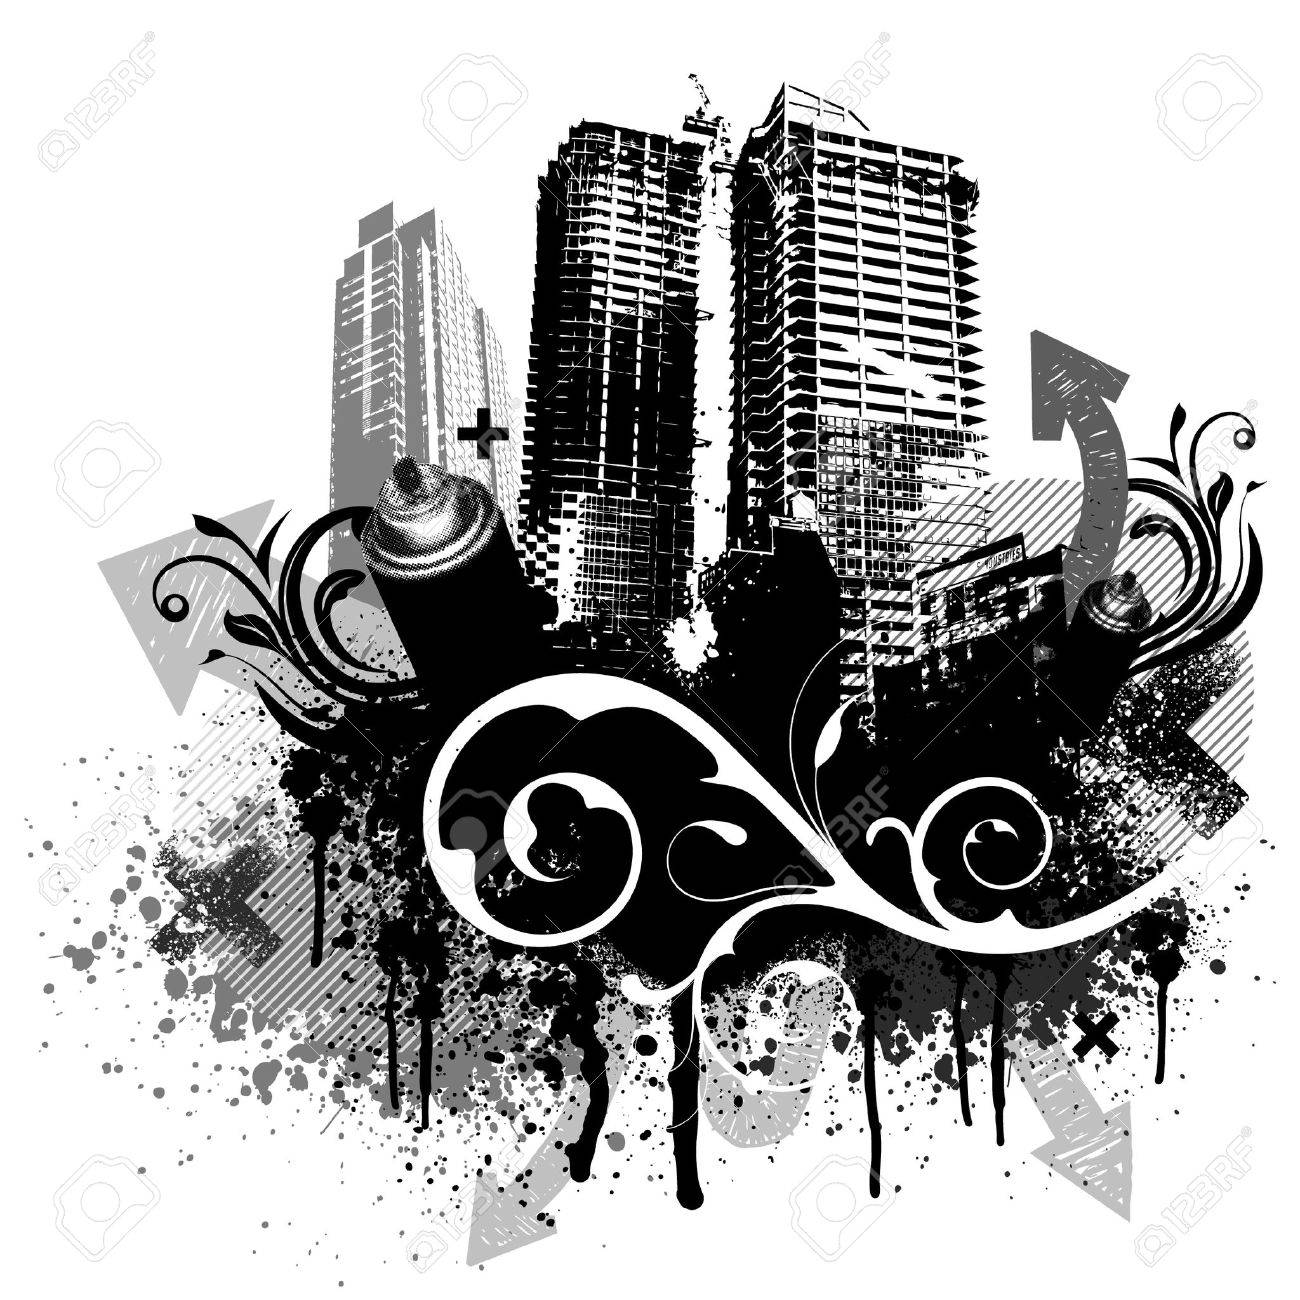 Black city buildings and graffiti grunge floral arrow design Stock Vector - 5791068